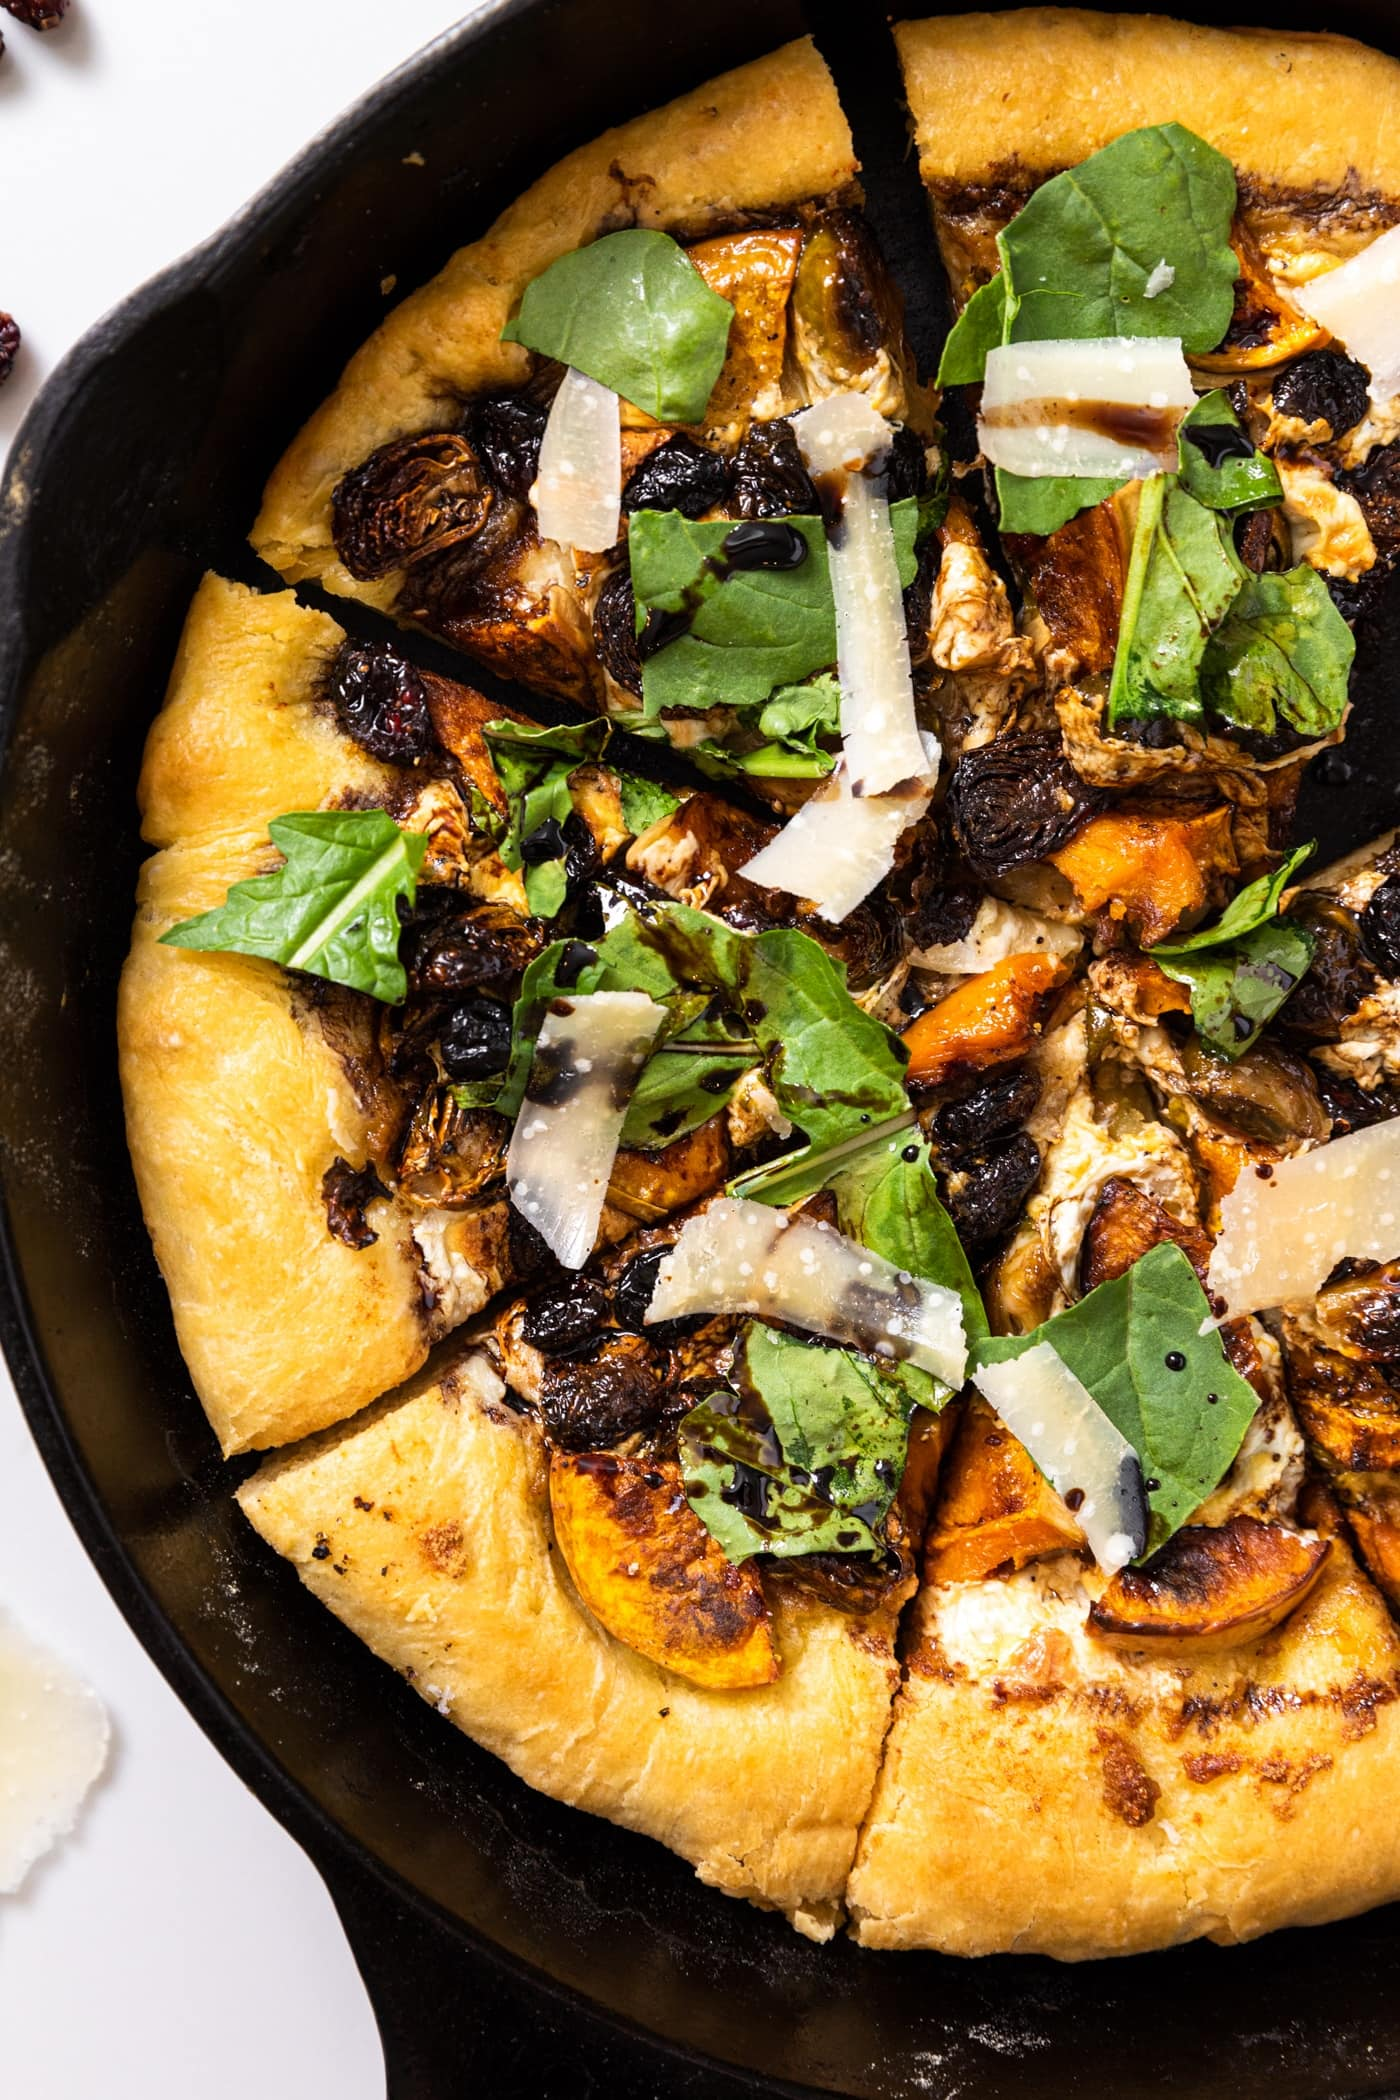 Top down view of cast iron skillet filled with rustic homemade fall pizza with butternut squash and Brussels sprouts on top